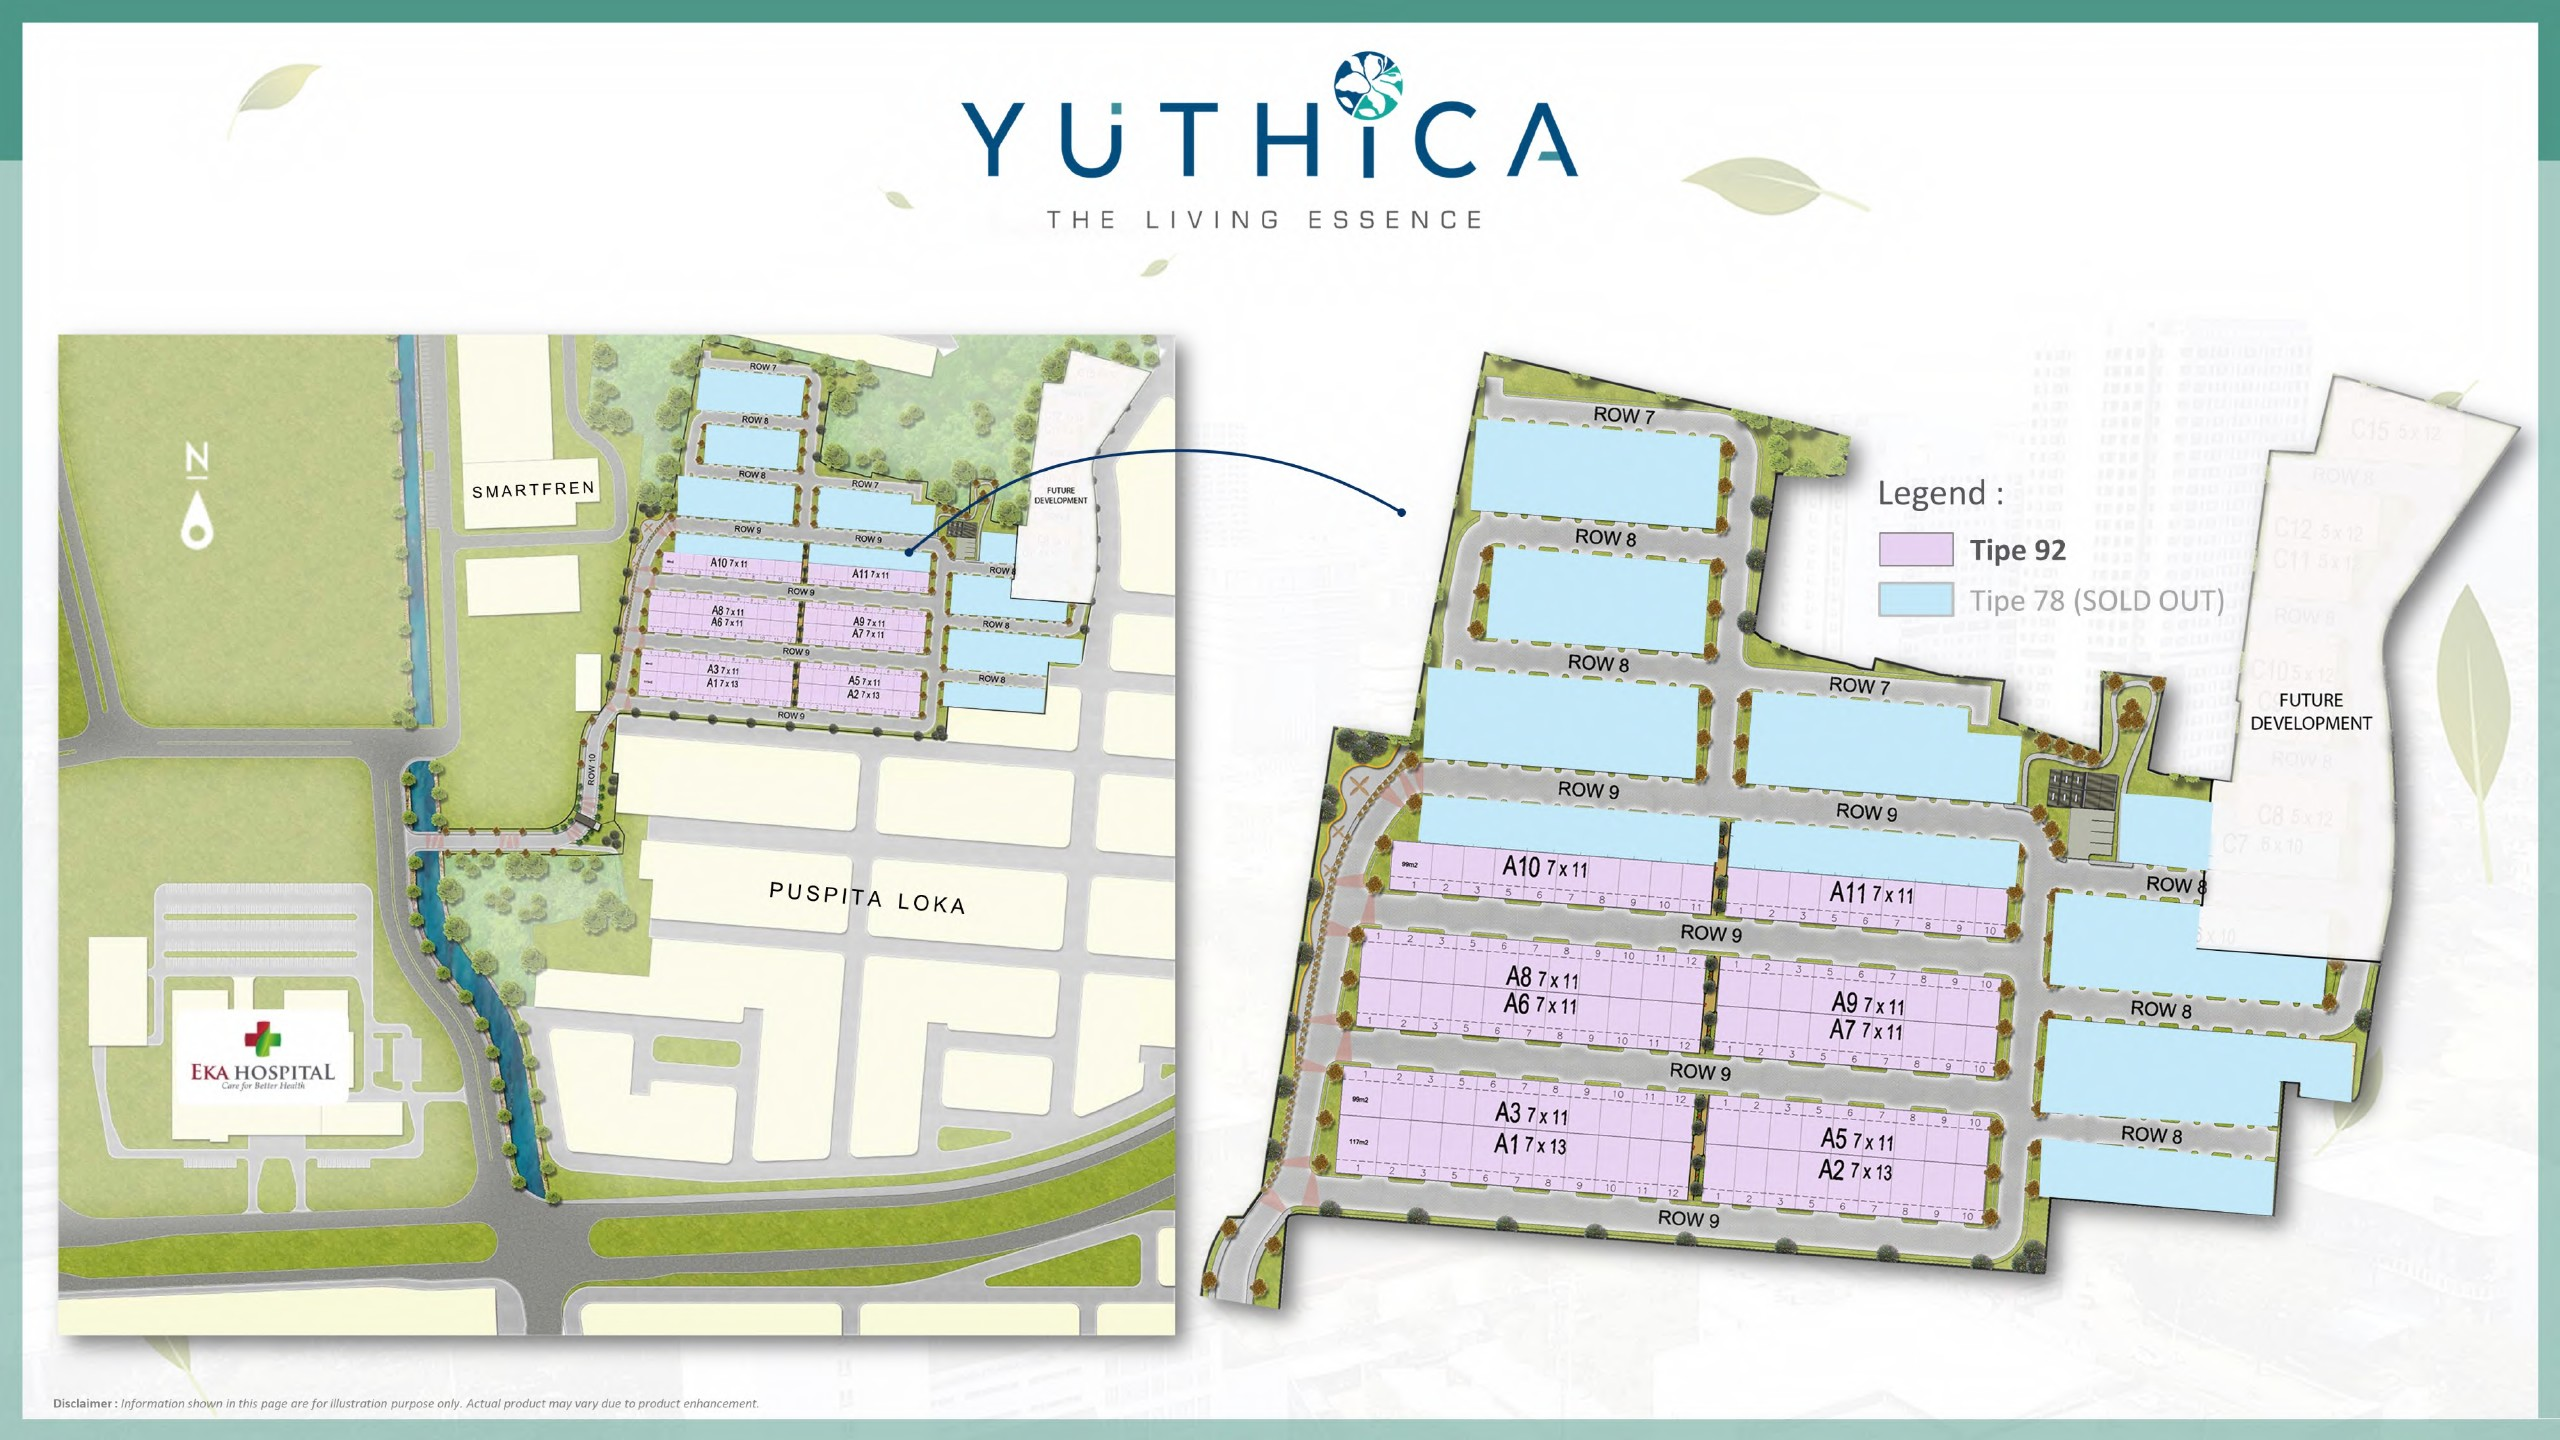 siteplan yuthica bsd tahap 3